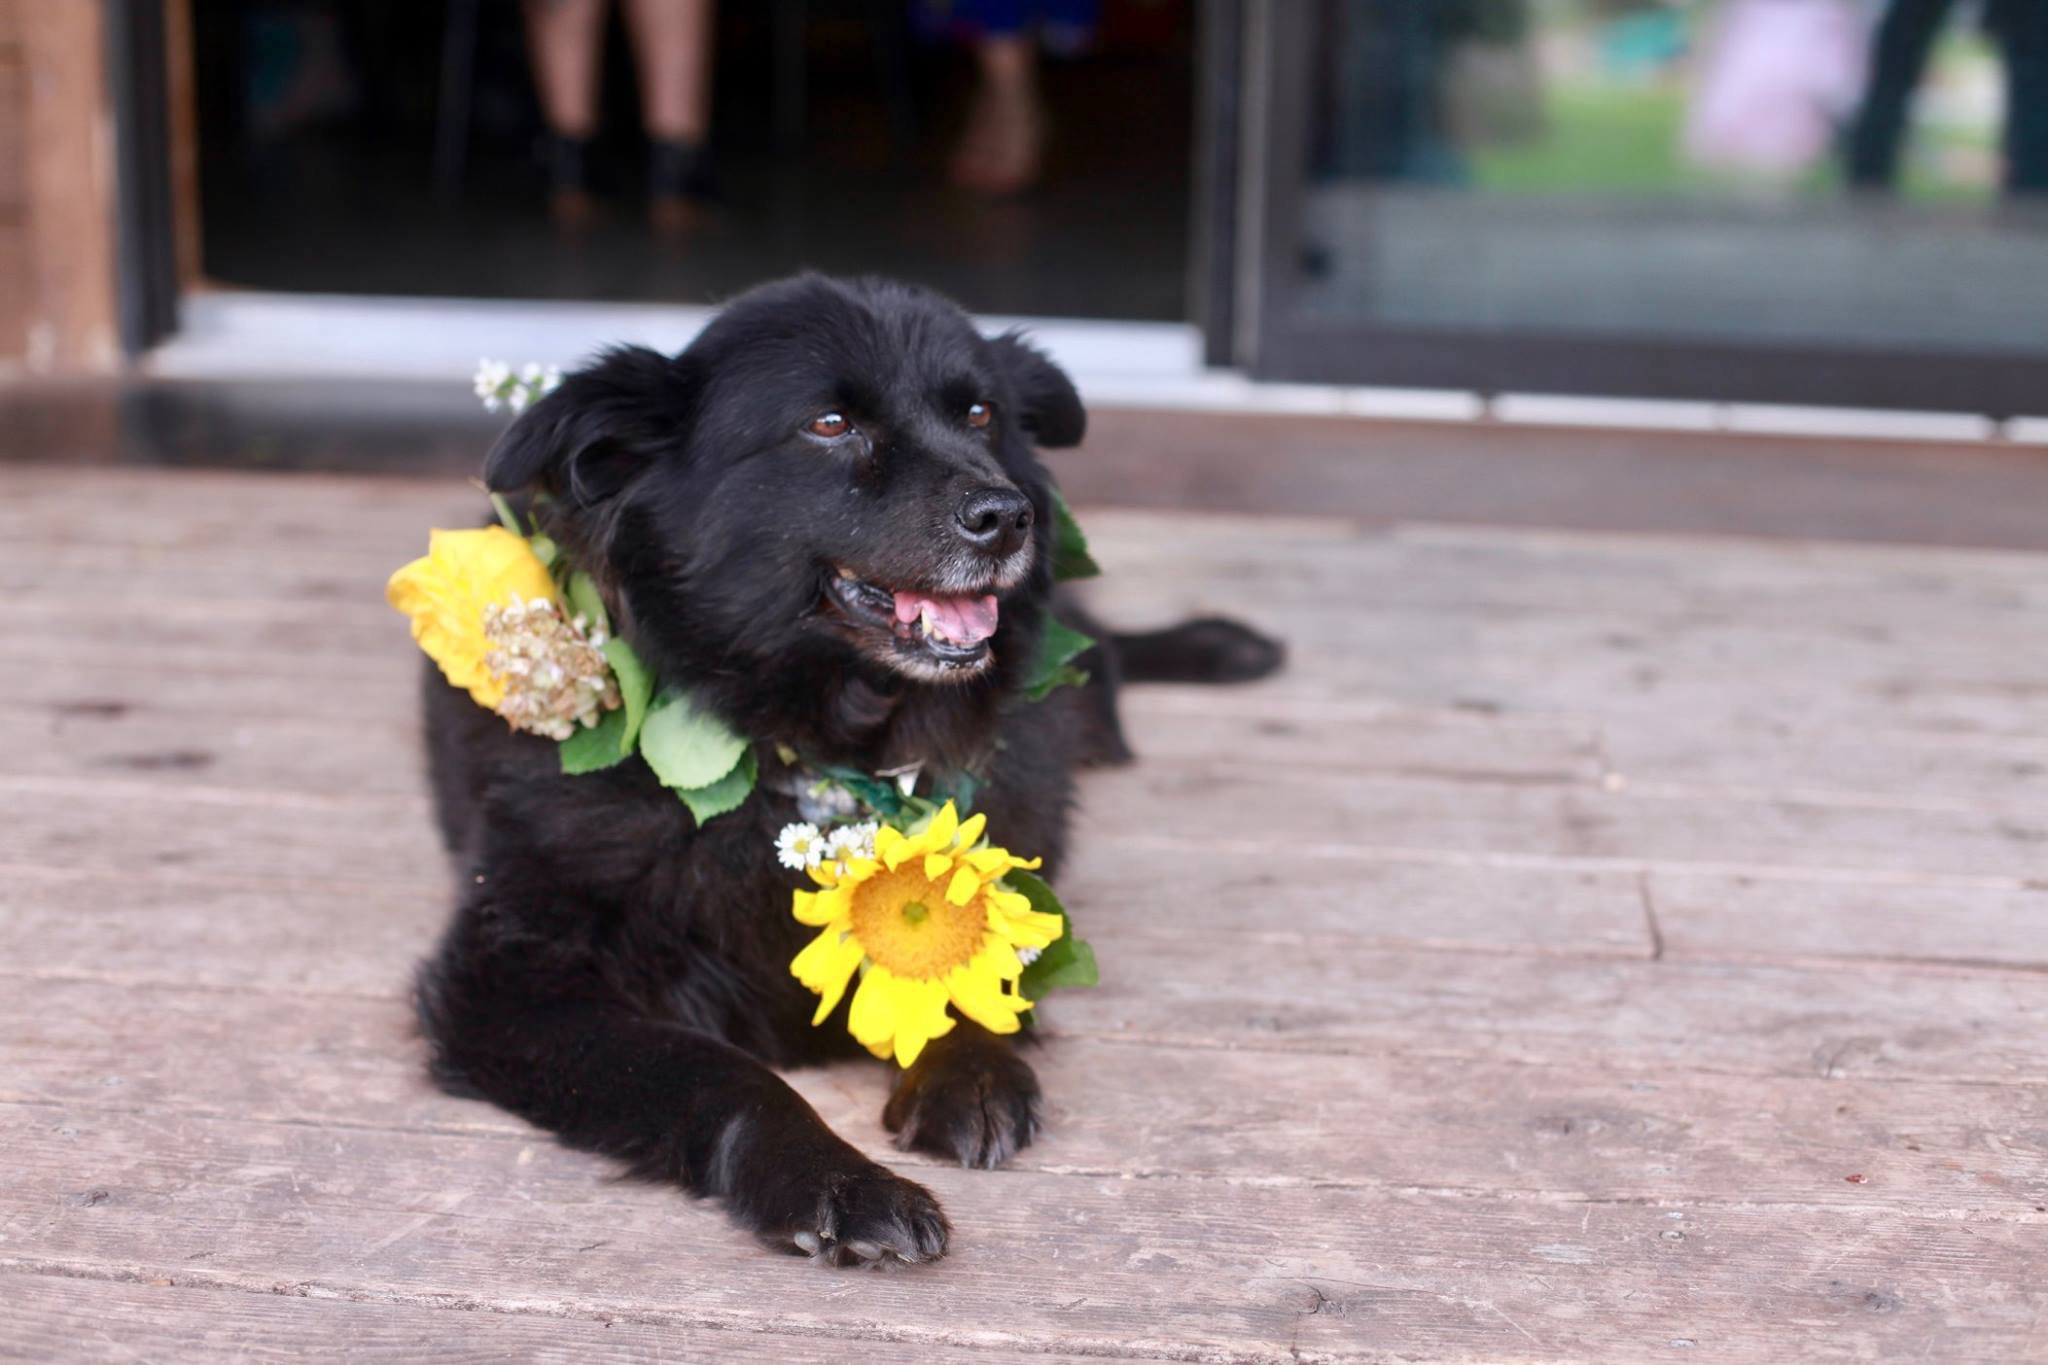 Jessie wears a lei made of yellow flowers and smiles while laying on a porch